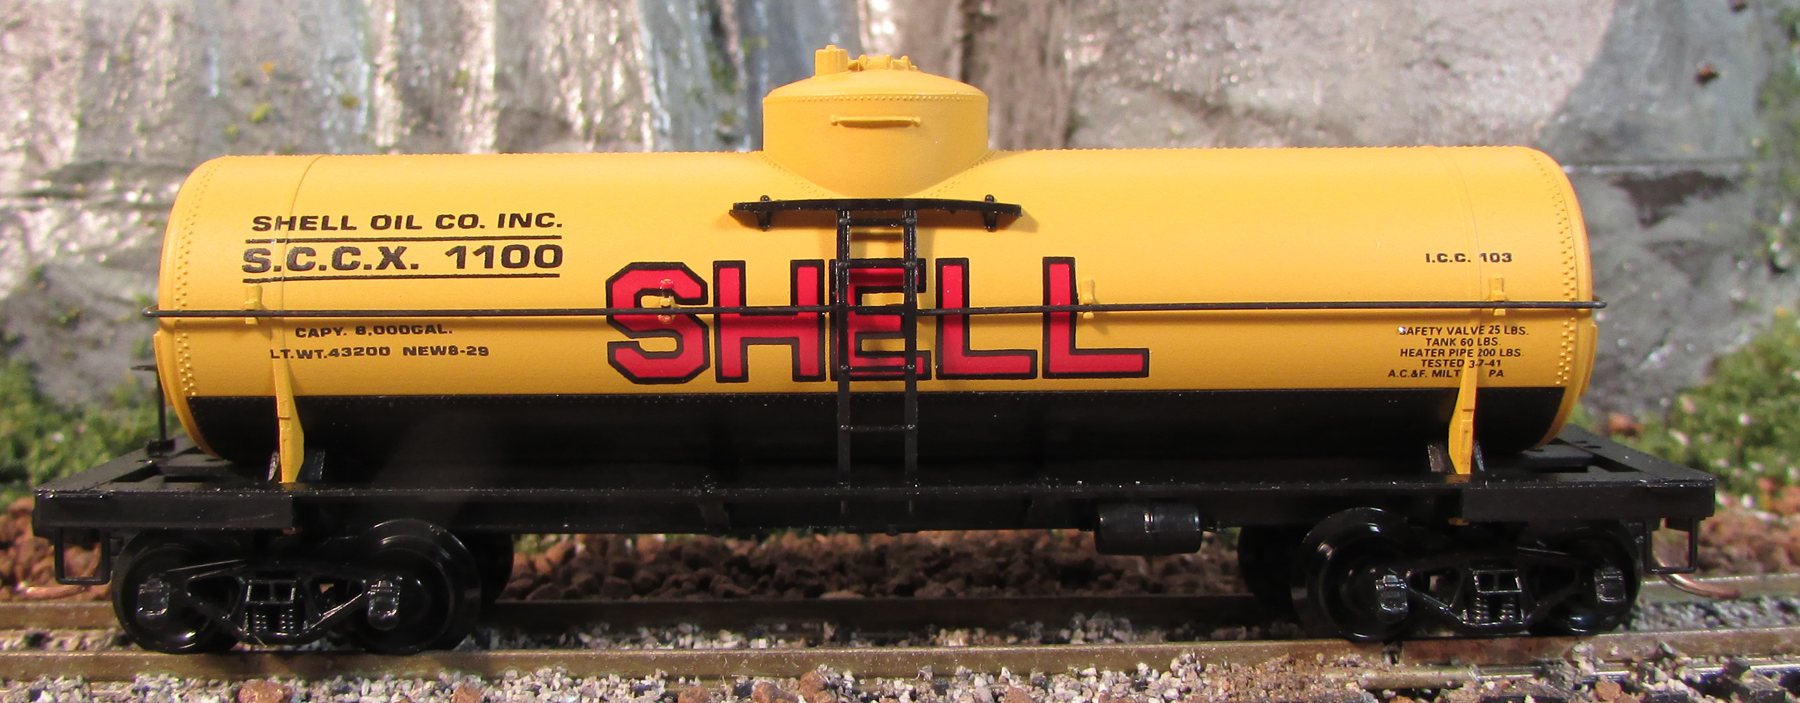 N Scale - Micro-Trains - 65090 - Tank Car, Single Dome, 39 Foot - Shell Oil - 1103